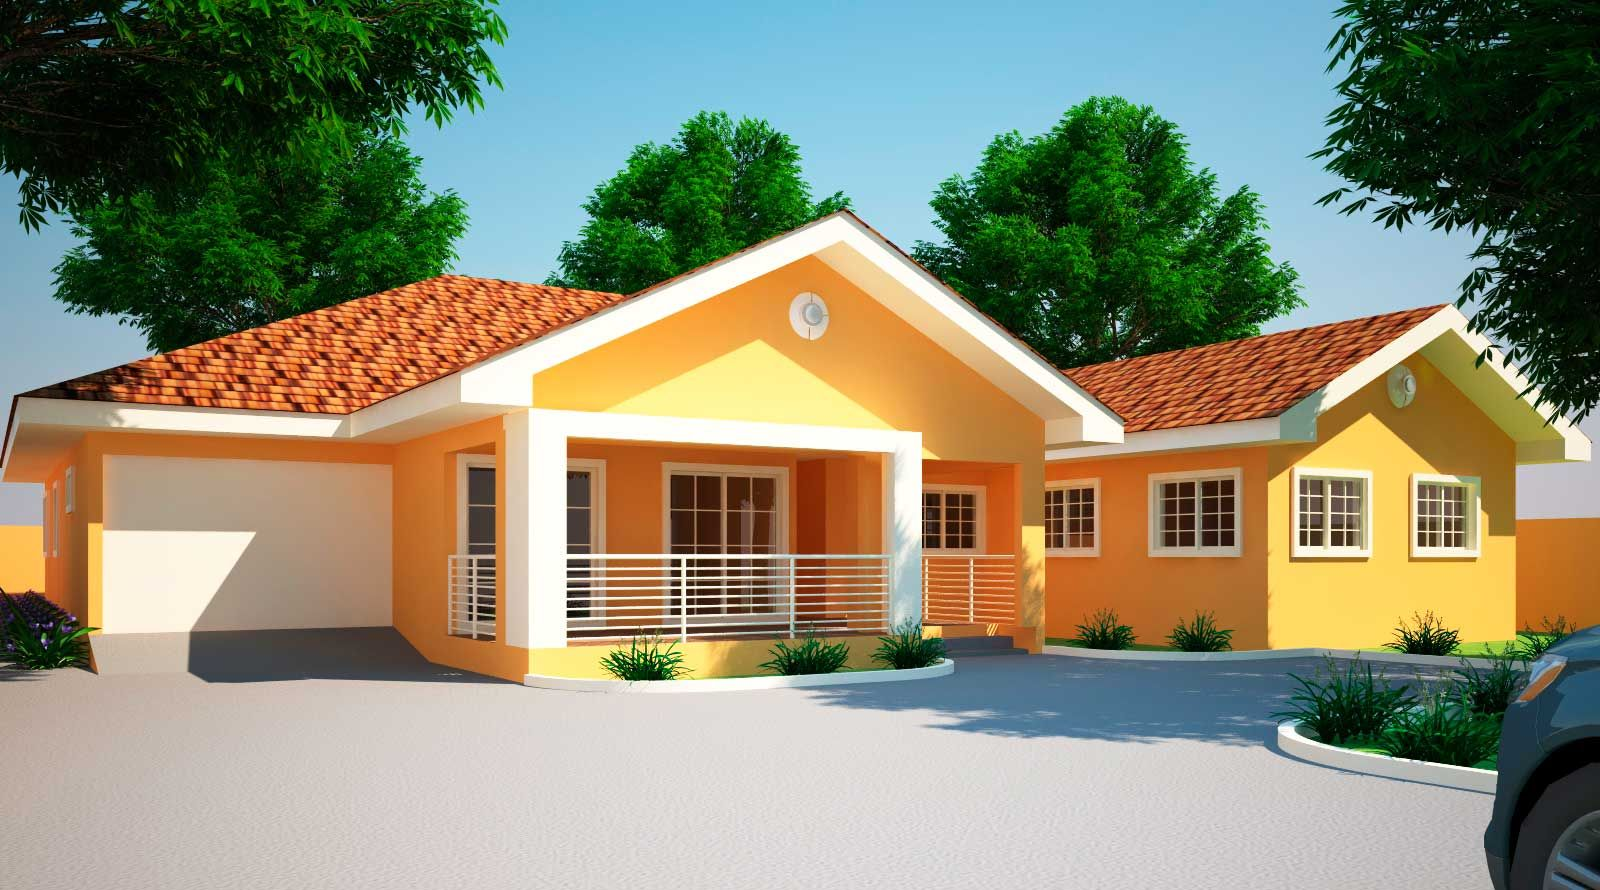 4 Bedroom House Photos House Design 4 Bedroom House Plans Small House Design